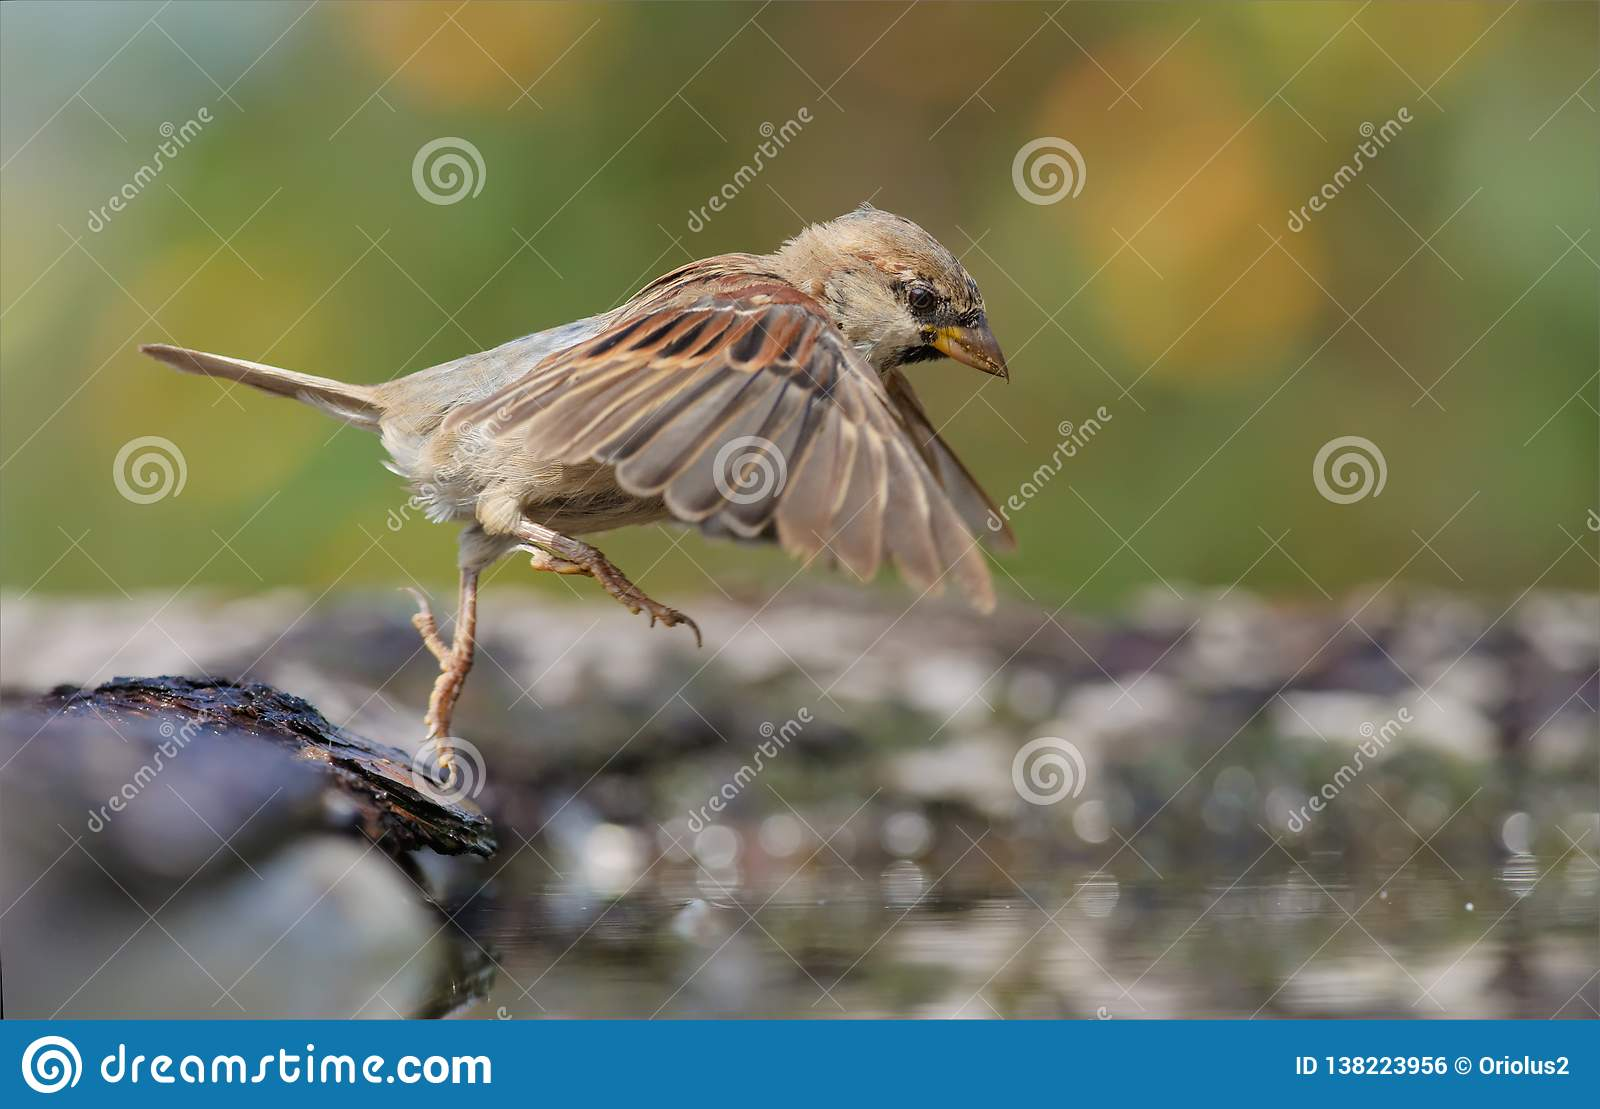 House Sparrow jumping into the water pond with stretched wings and legs